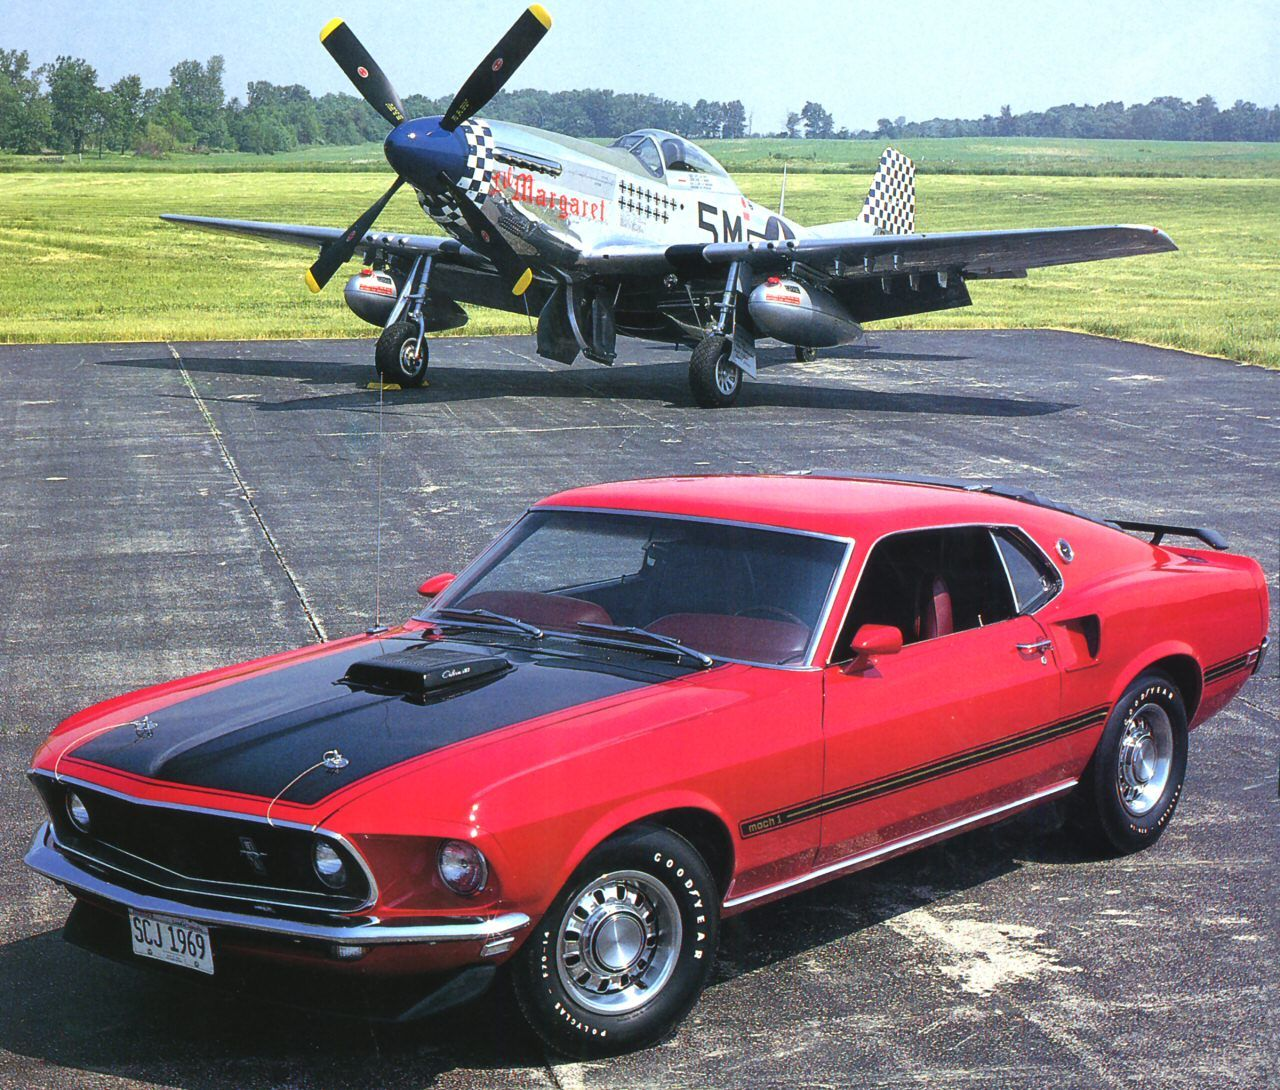 P51 mustang where the inspiration came from for the ford mustang two iconic pieces of american history